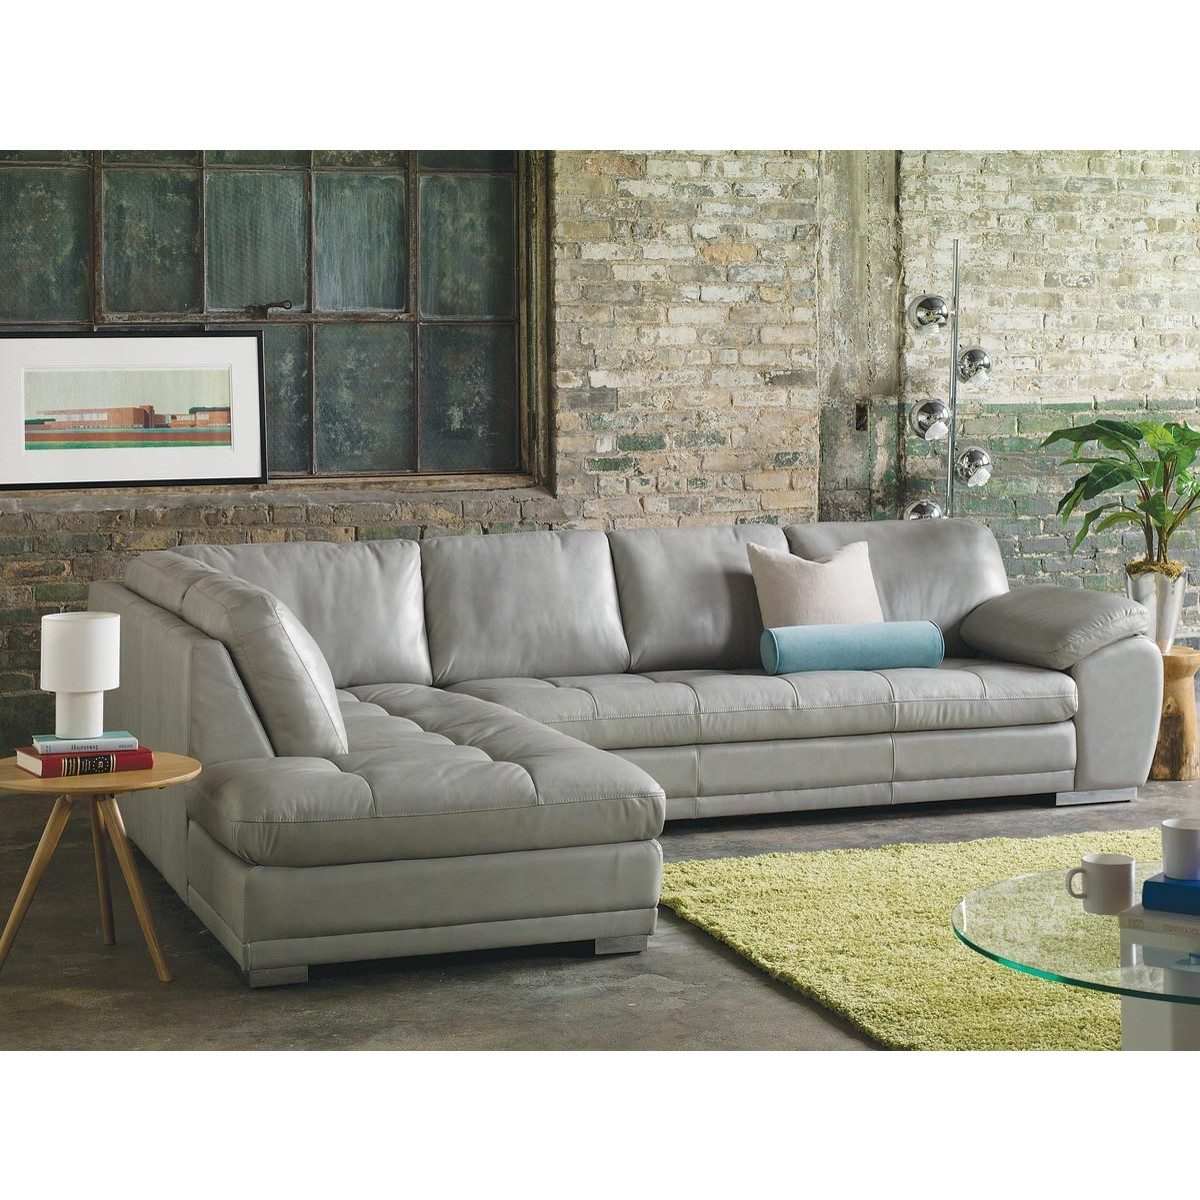 Chic Contemporary Furniture: Palliser Miami Sectional From $1,968.00 By Palliser